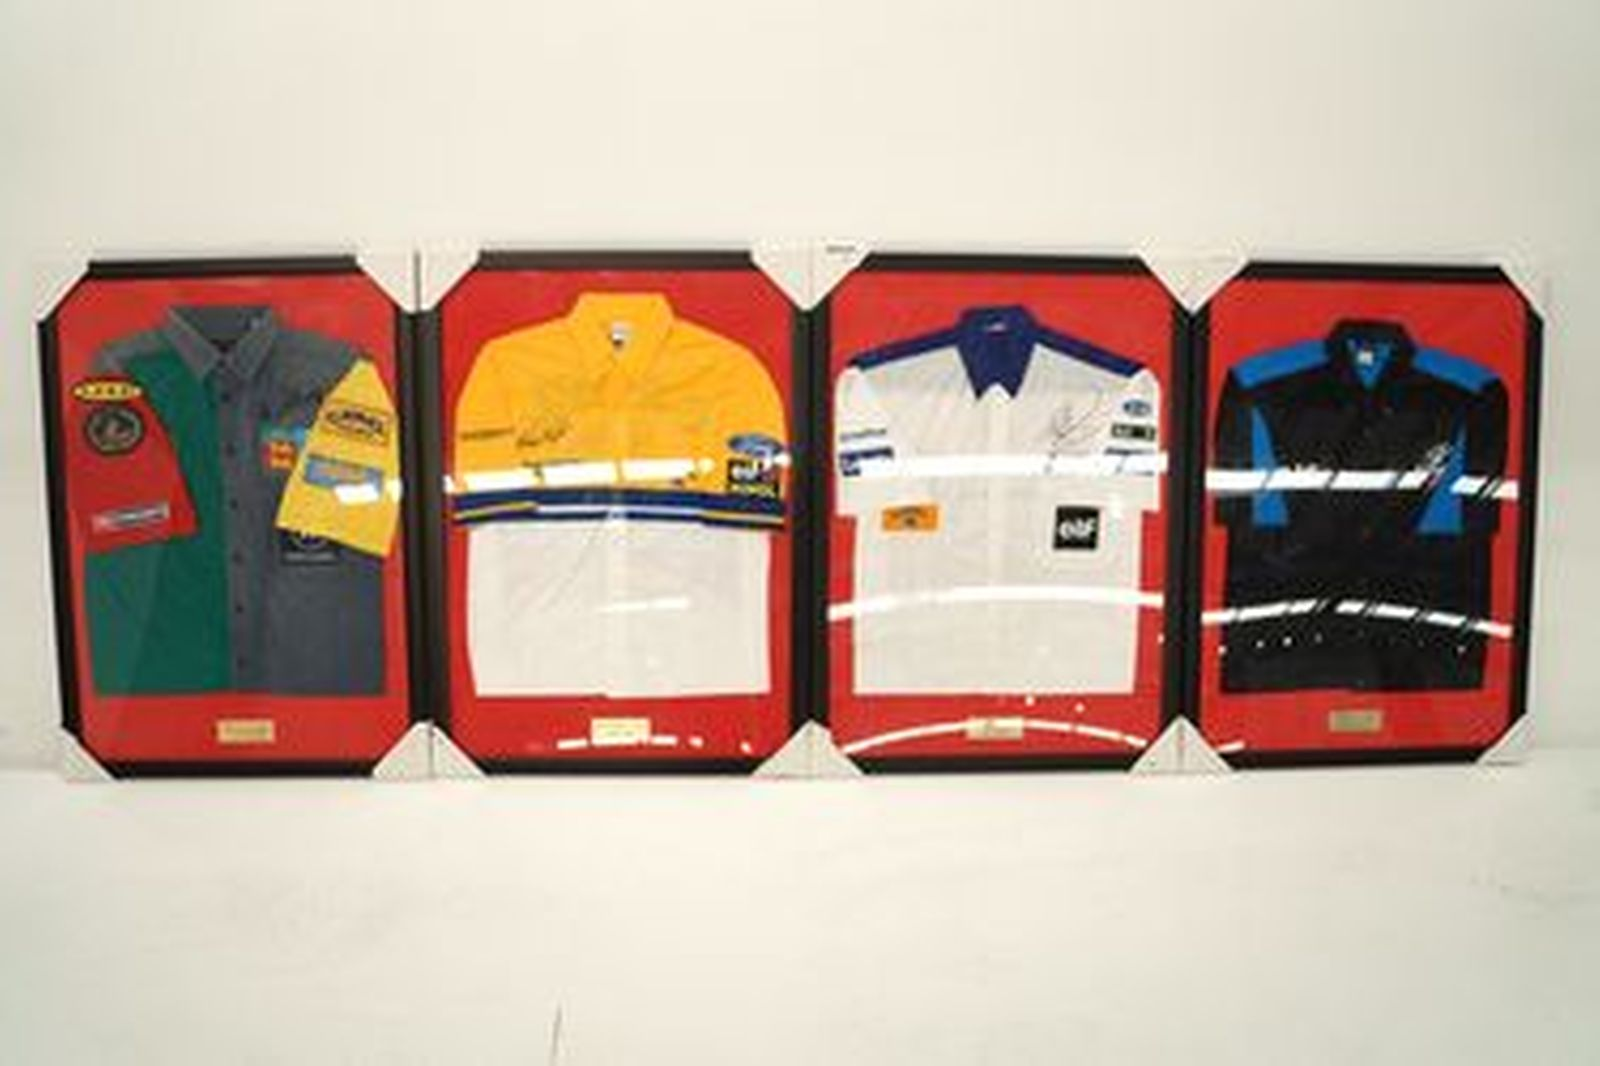 Framed Shirts - 4 x Assorted F1 Team Shirts signed from Adelaide GP 1989-91,92,93 (65 x 89cm each)